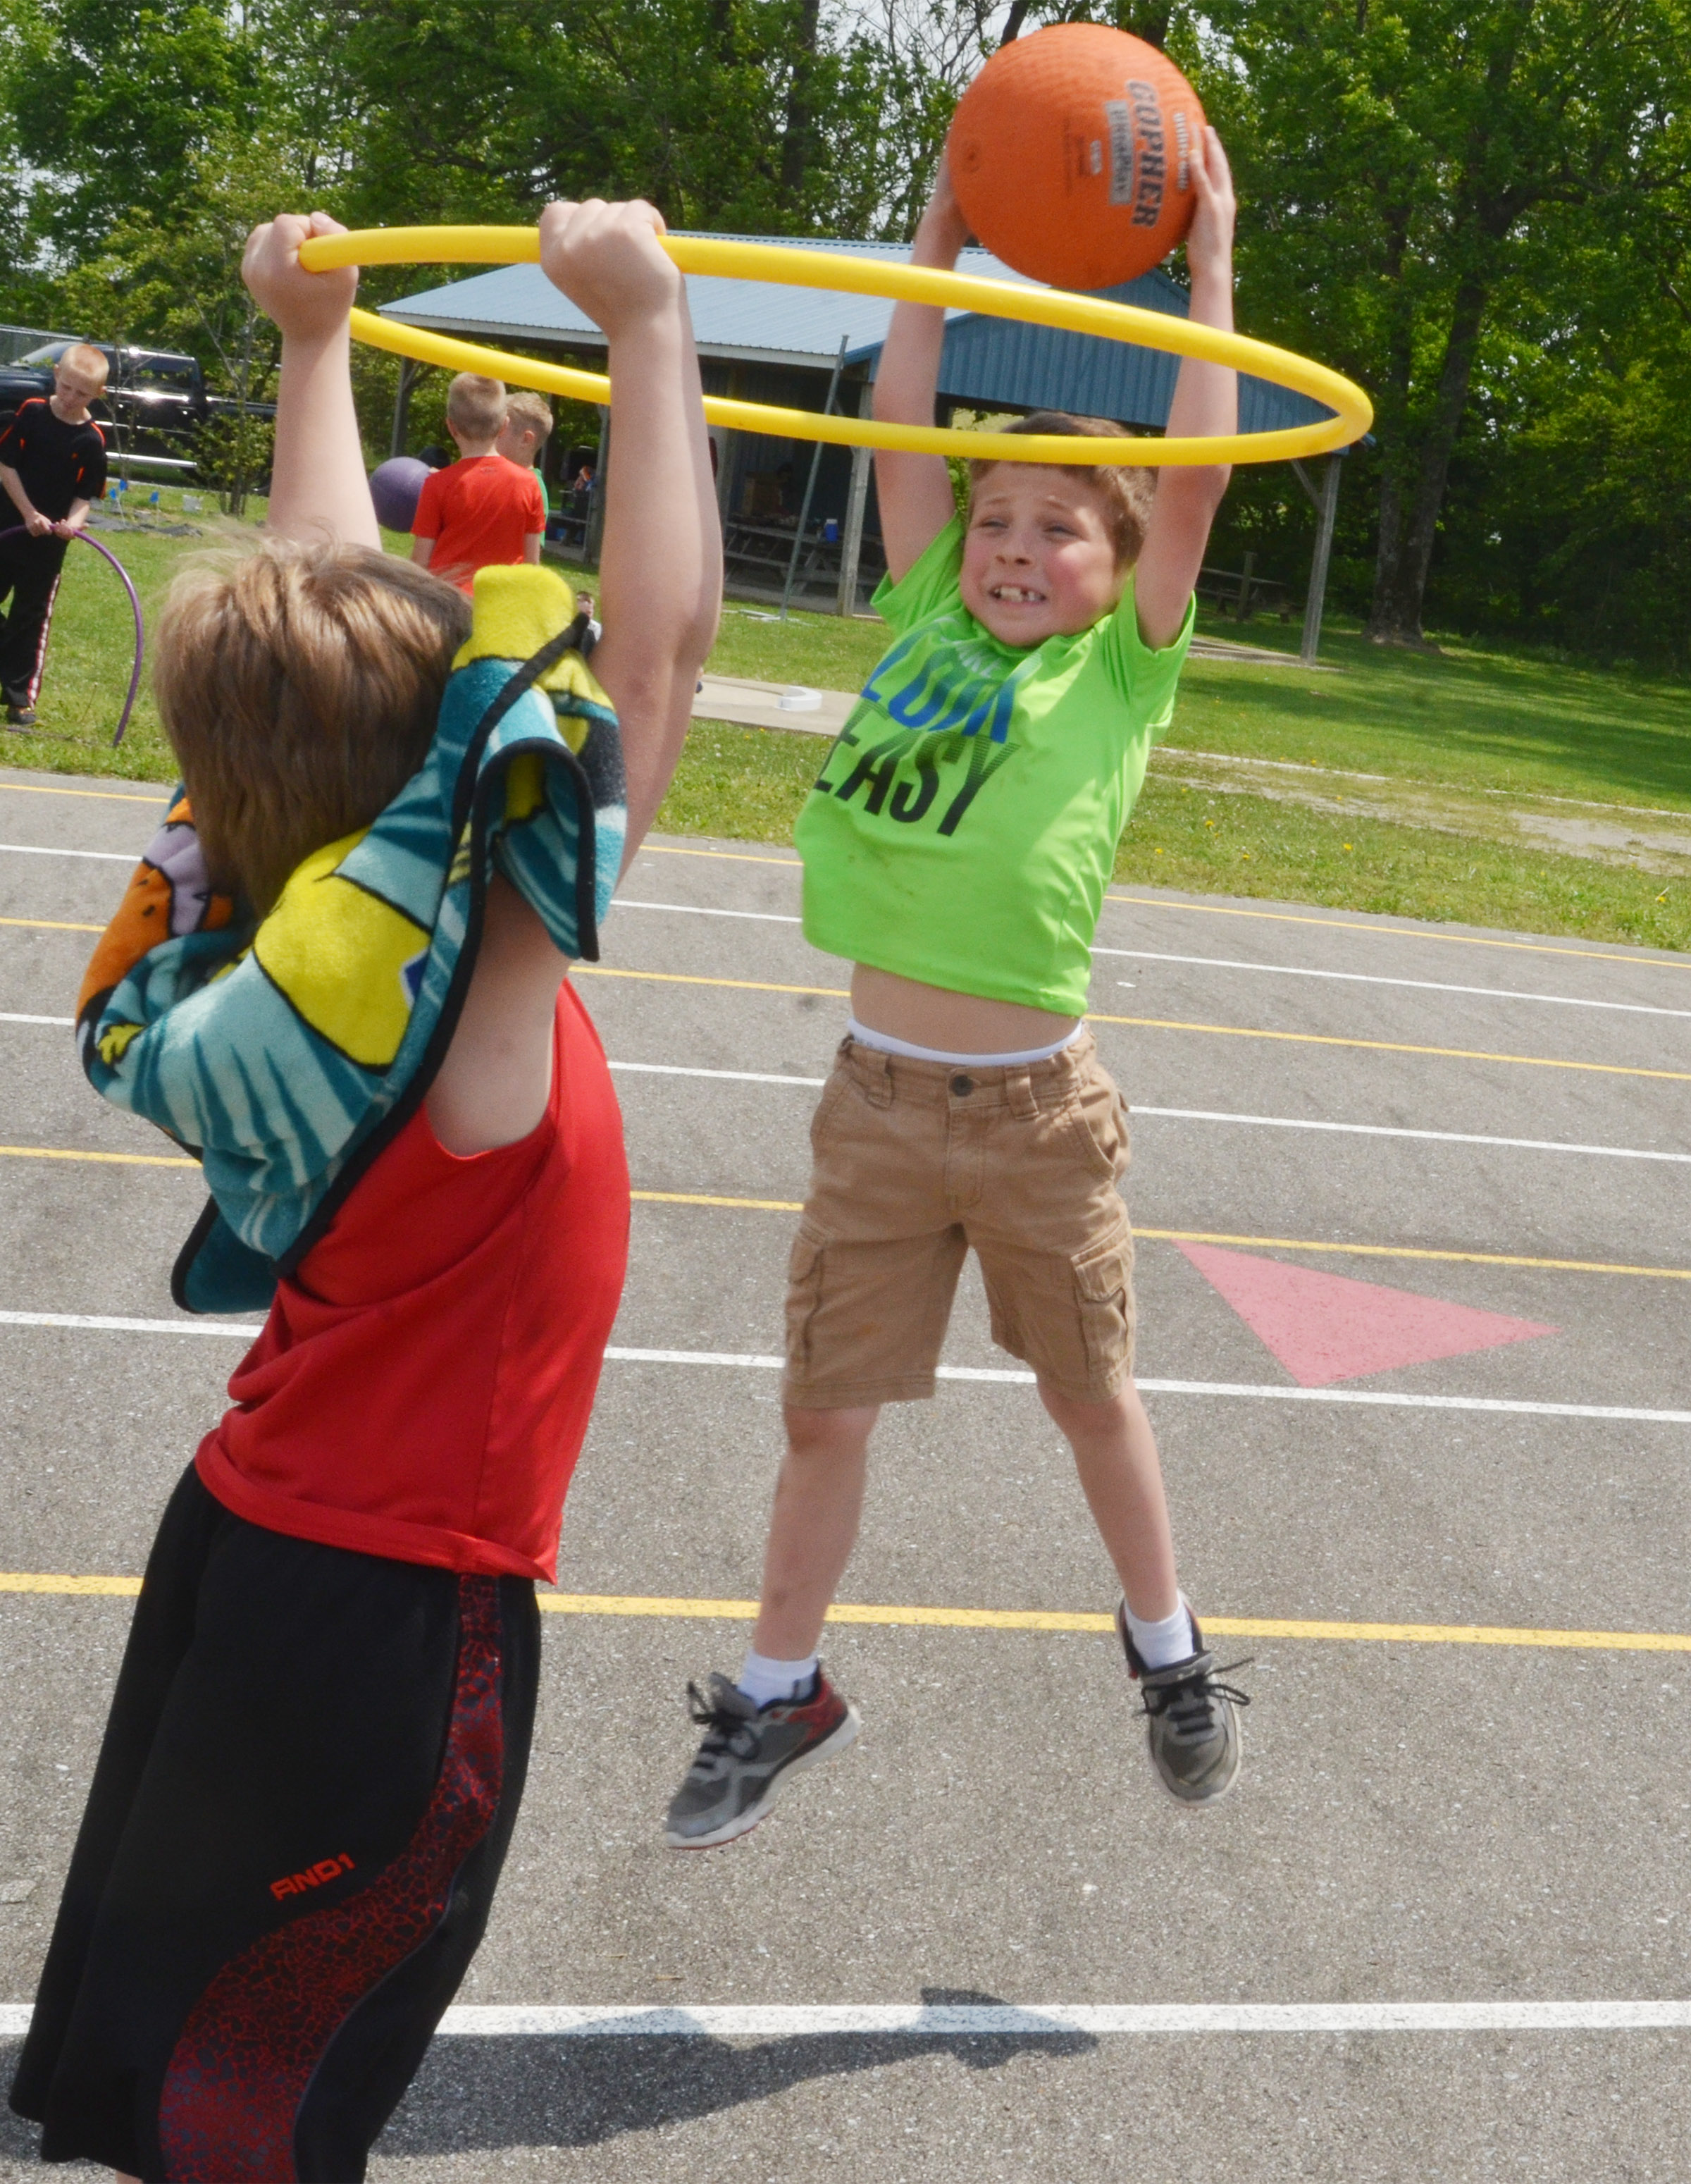 CES first-grader Bryson Gabehart jumps to shoot a basketball in a hula hoop.